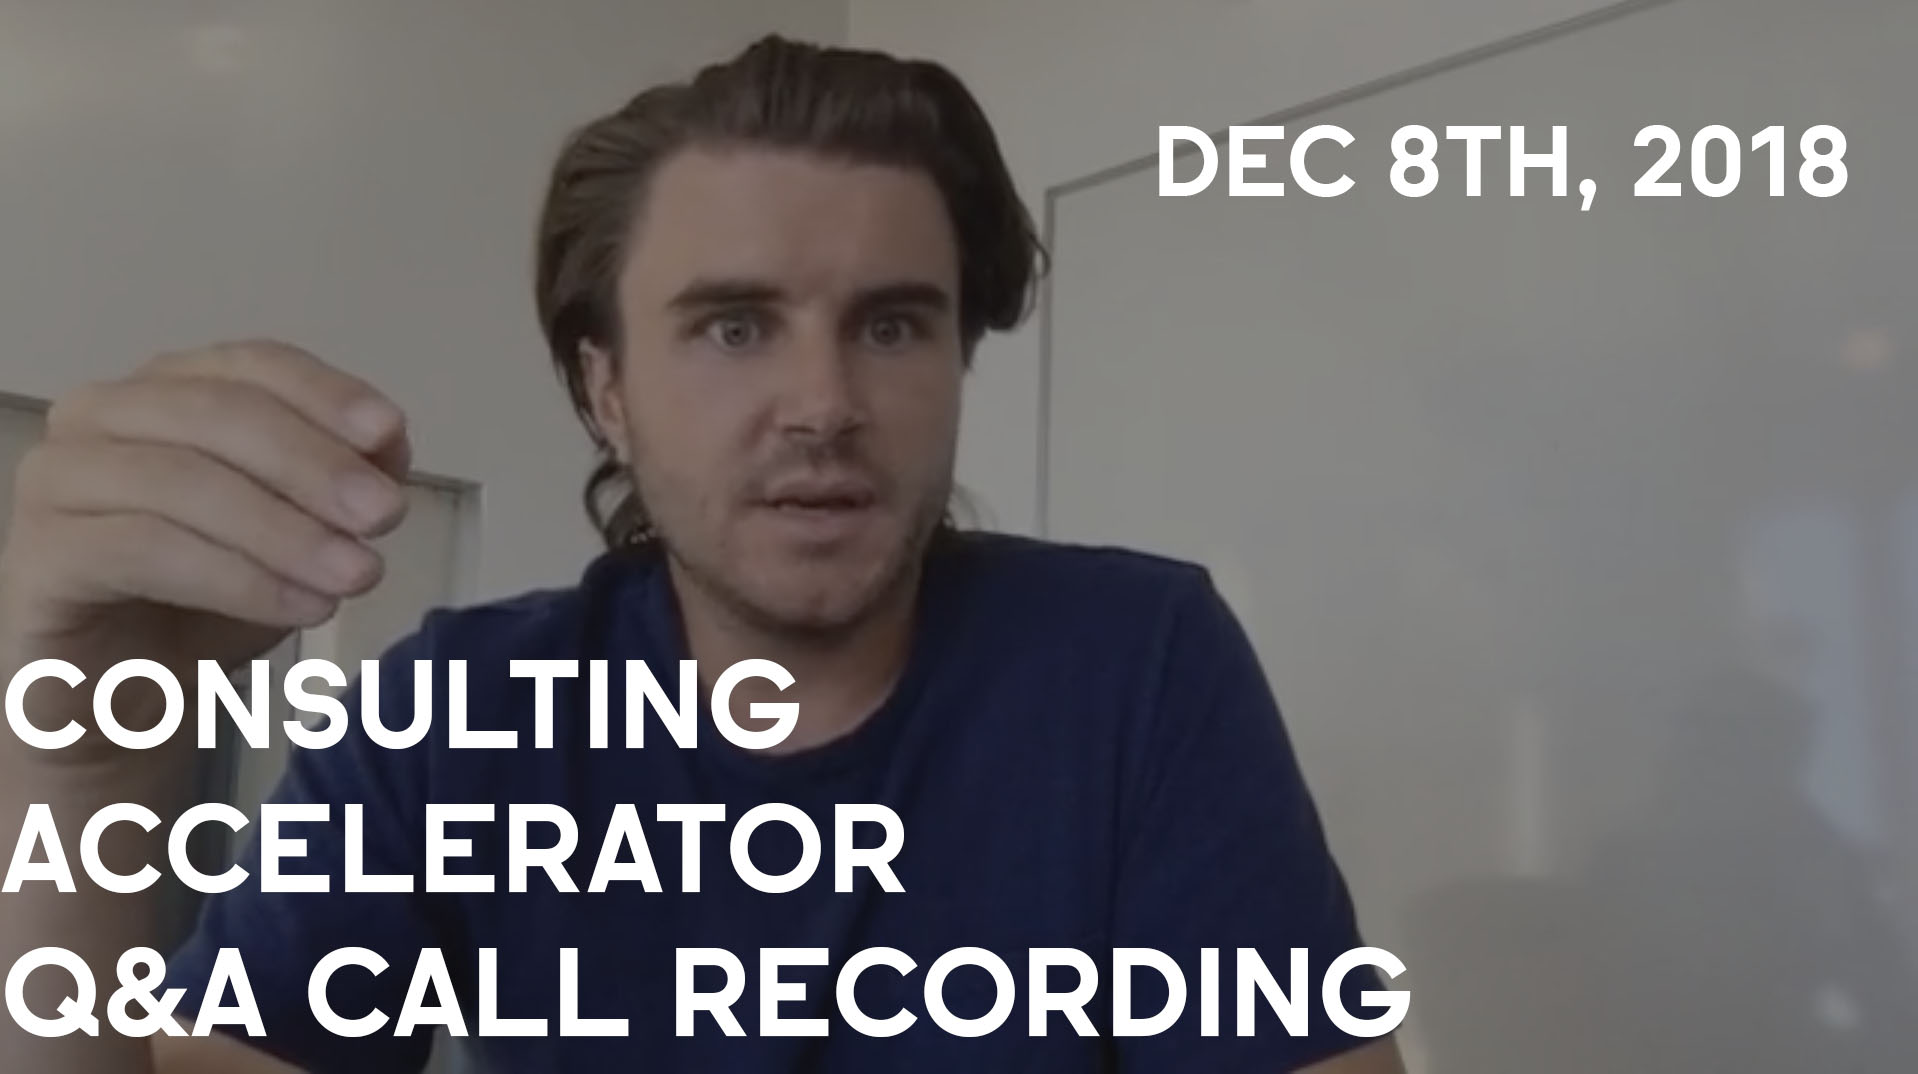 Consulting Accelerator Livestream Q&A, December 8th, 2018